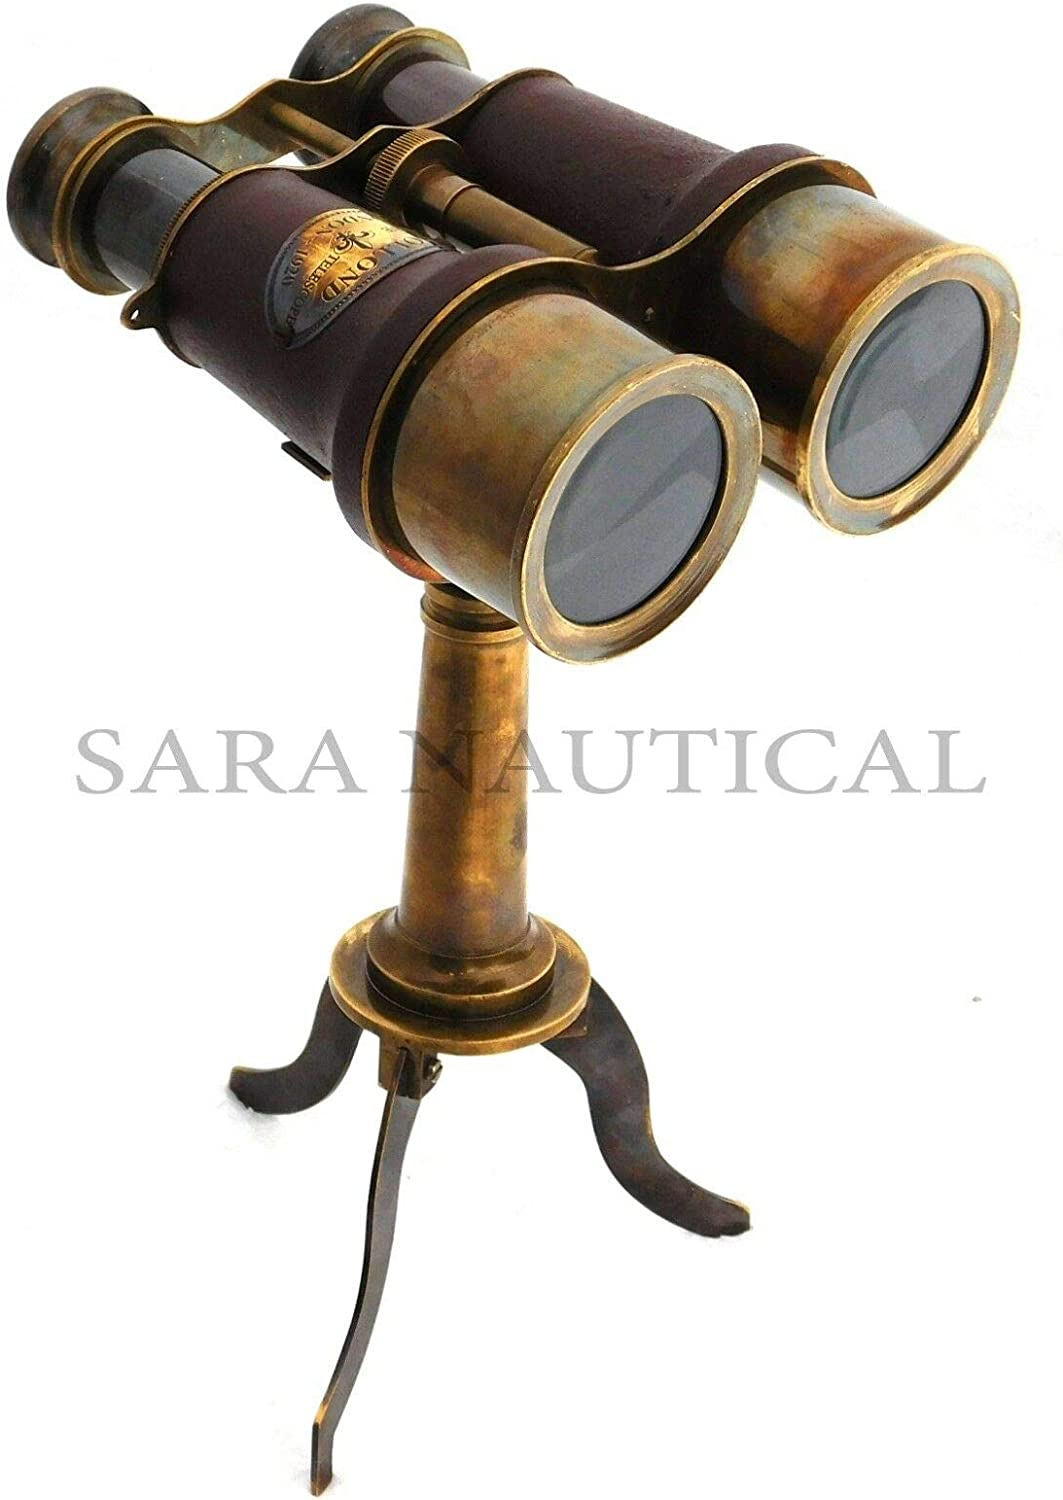 Nautical Brass Binocular Leather Antique Desk Telescope With Table Tripod Stand